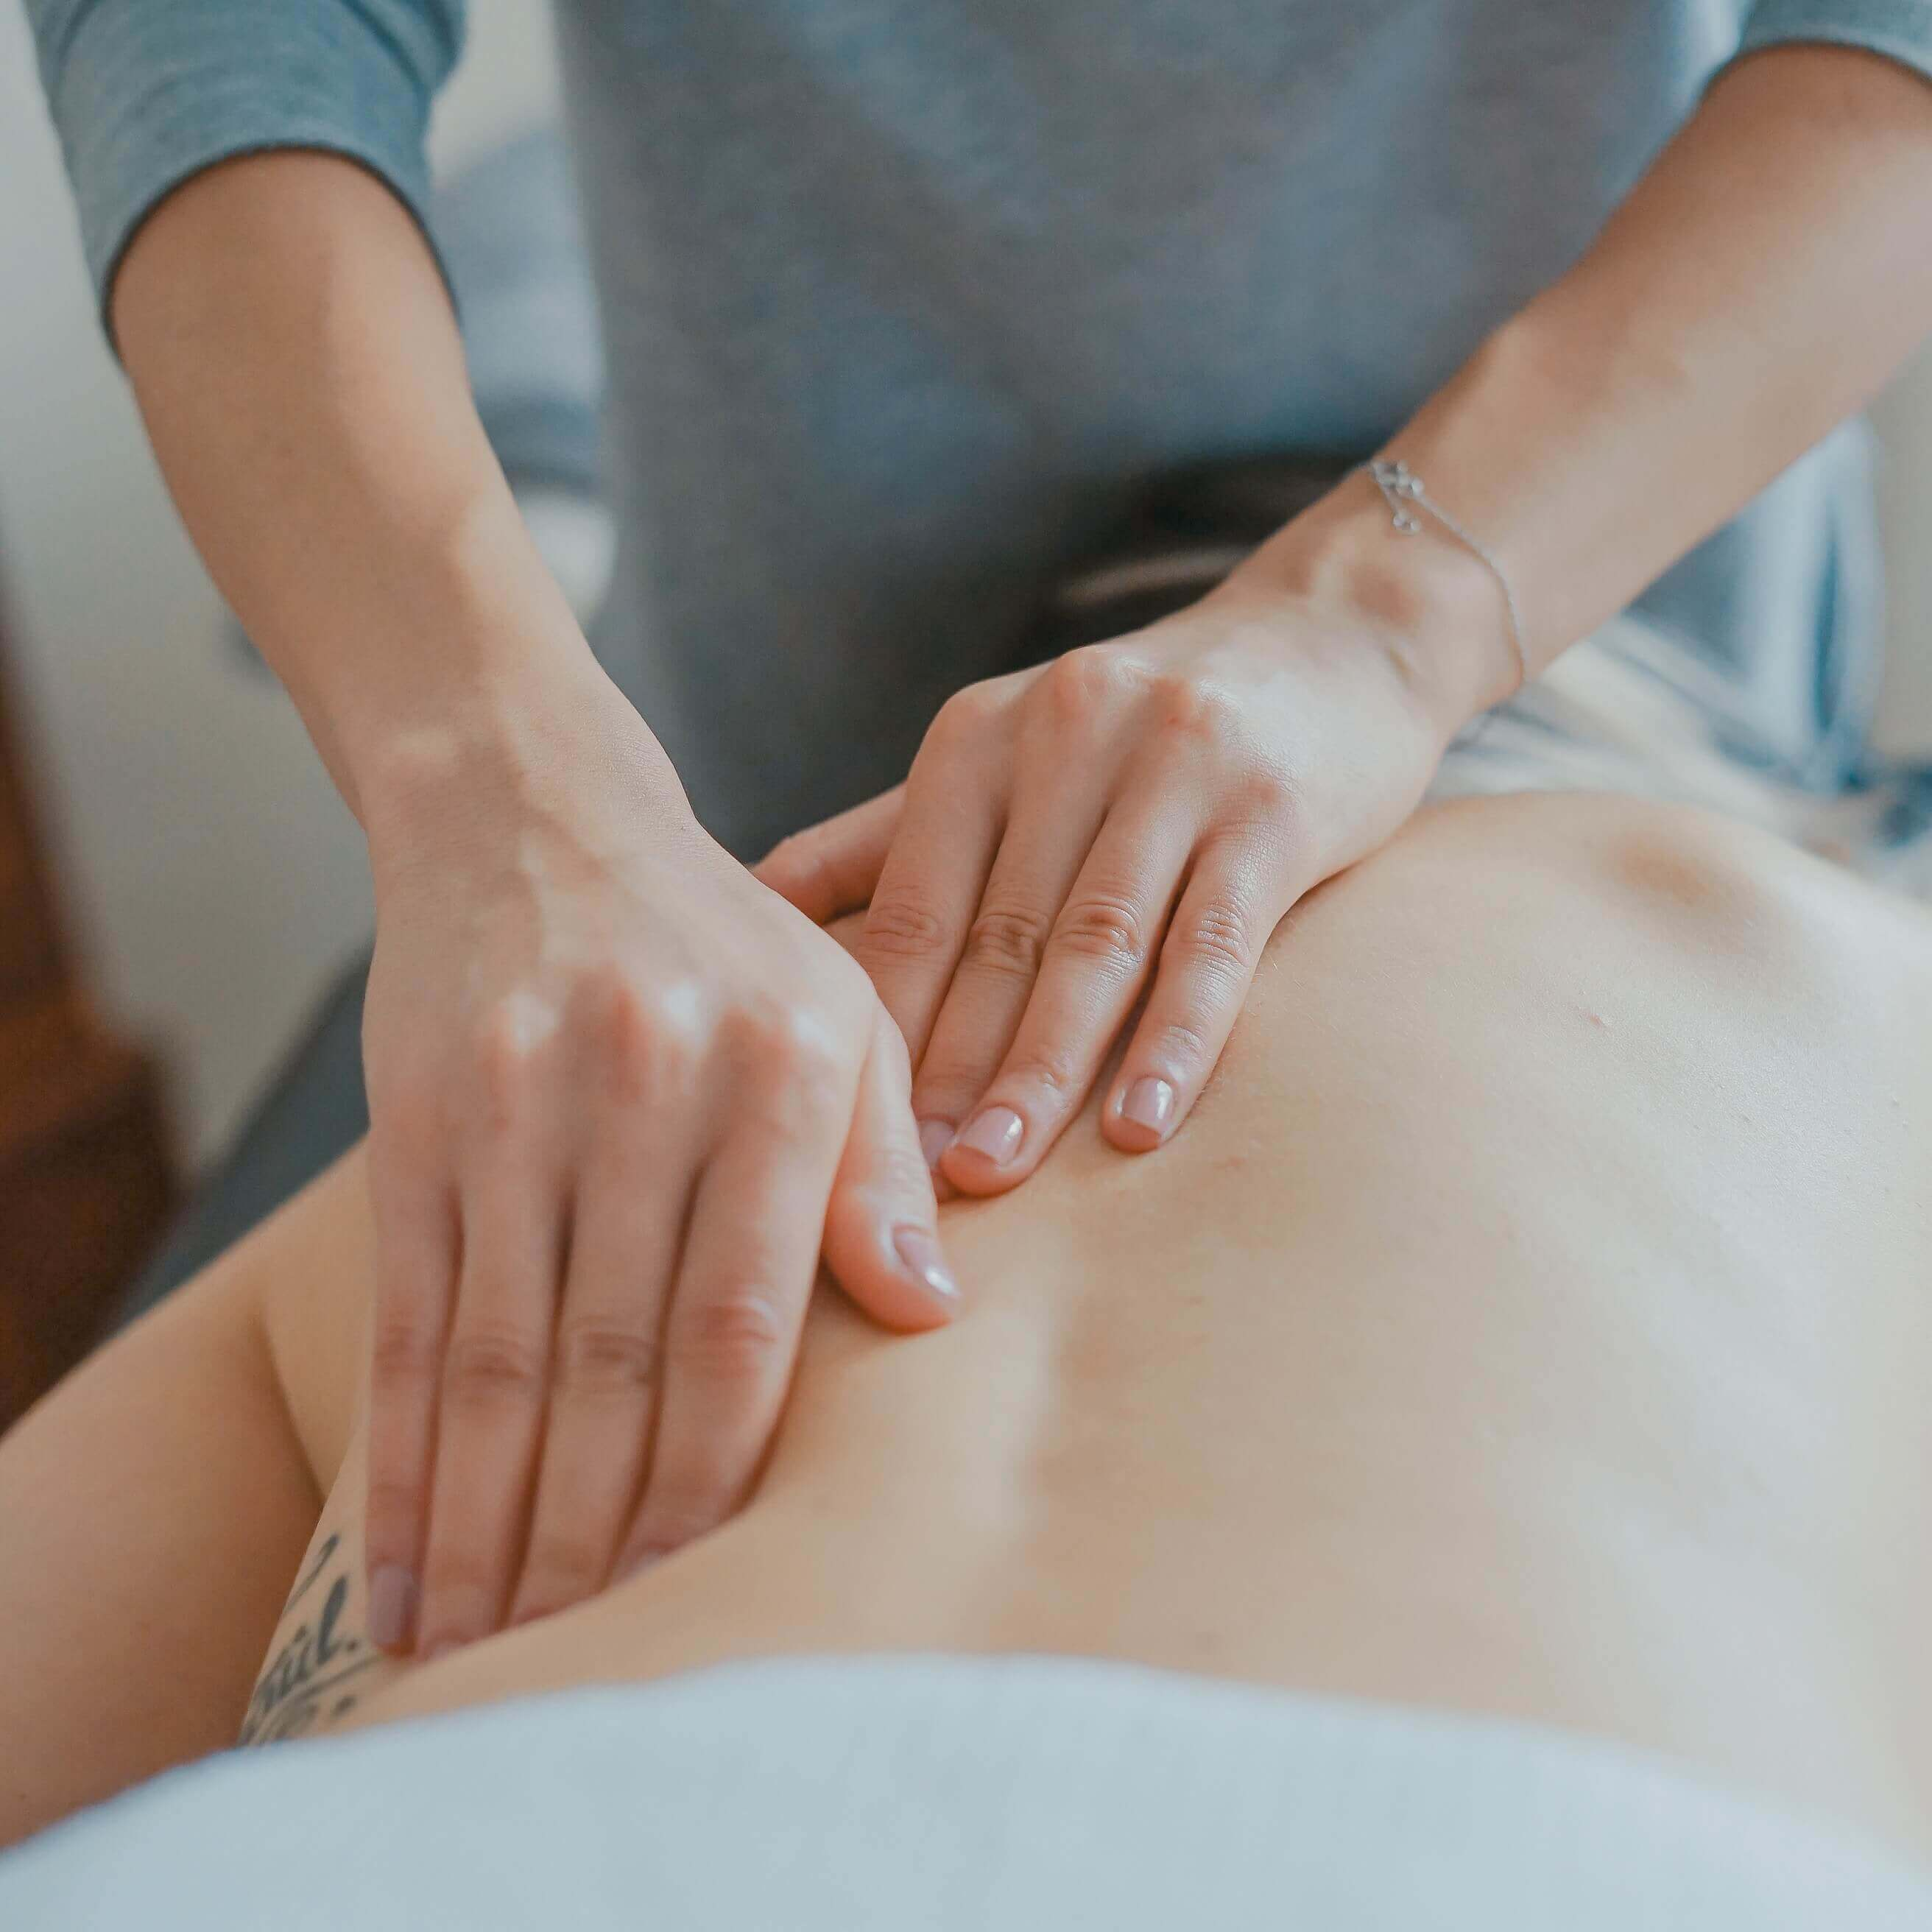 Sports massage for preganancy, postnatal and scar release in Bristol.